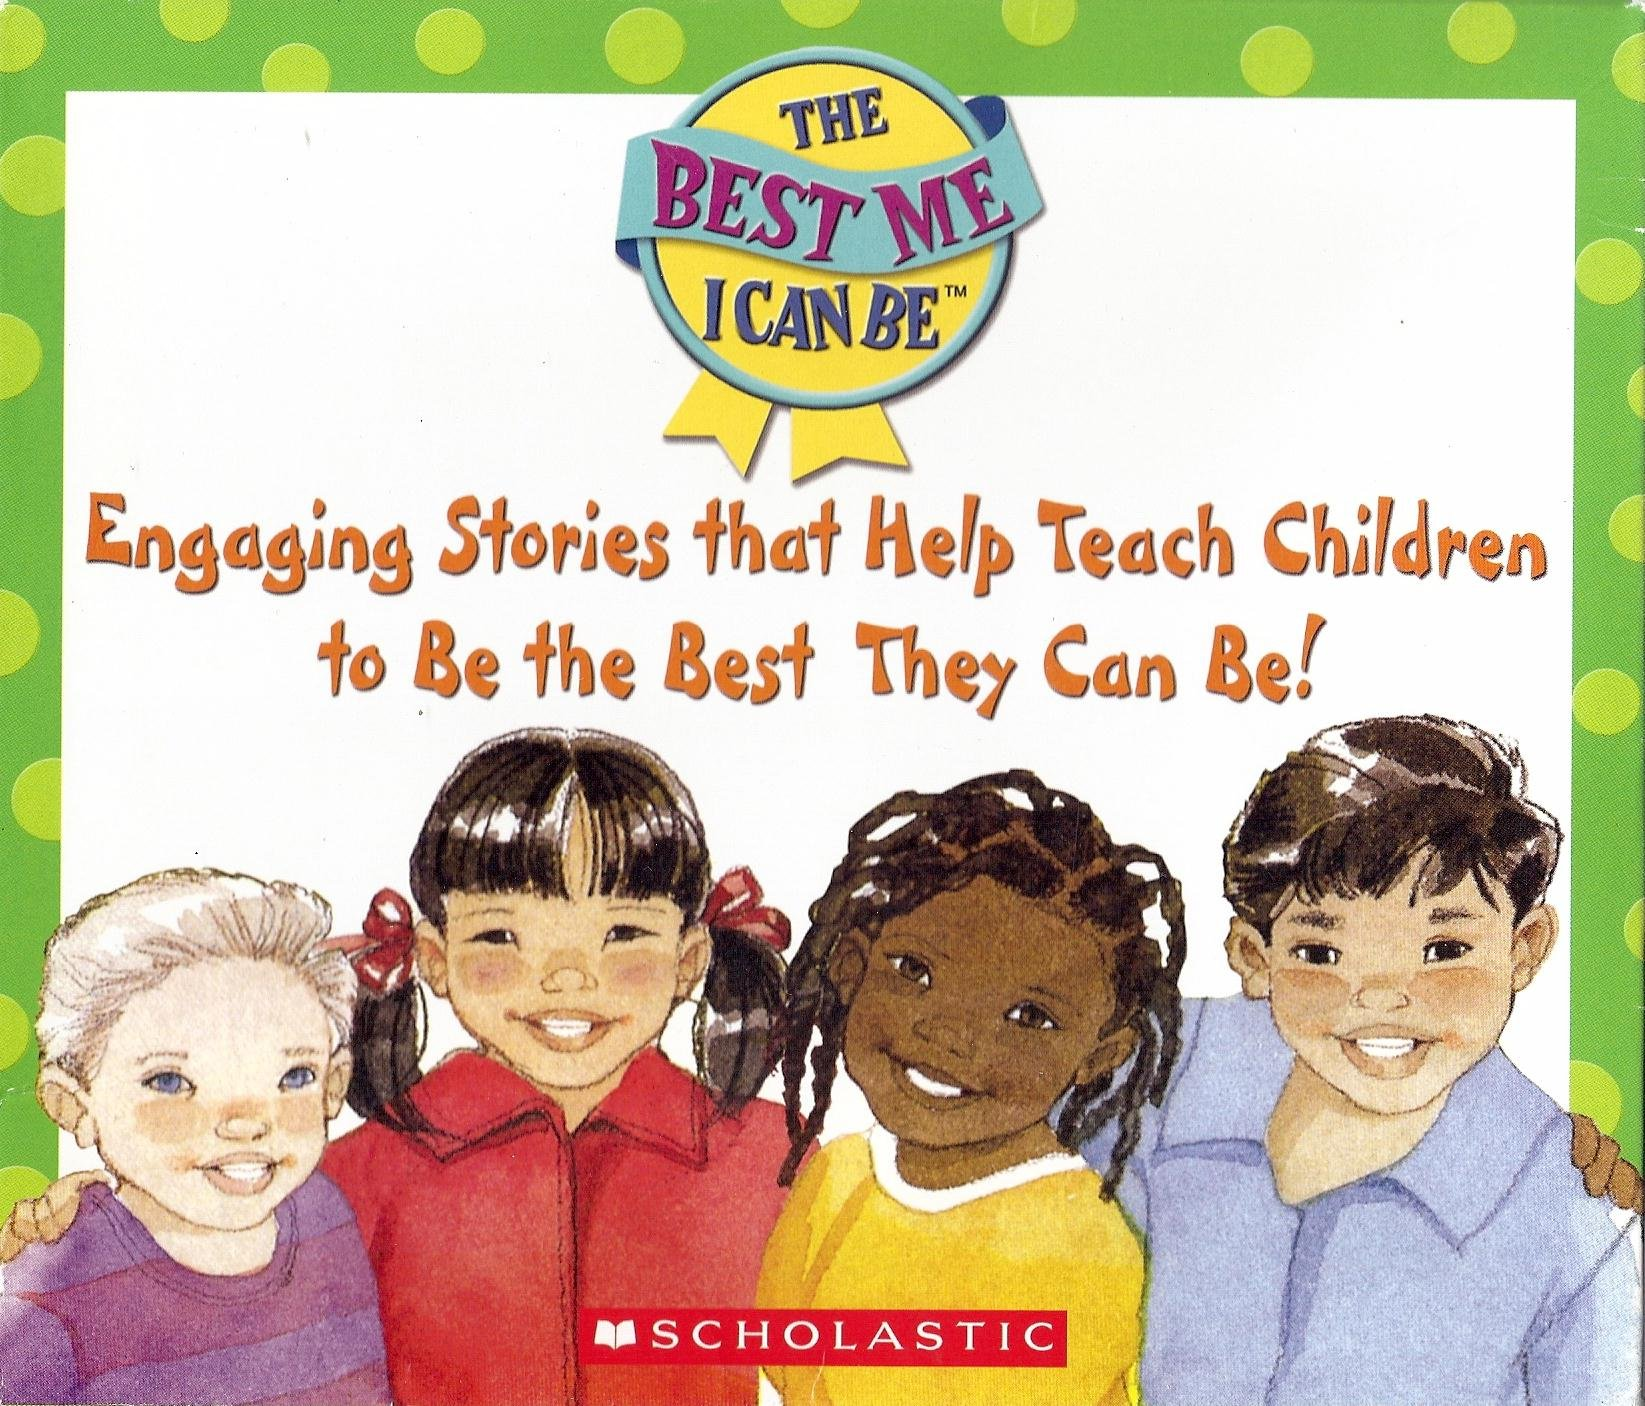 Engaging Stories That Help Teach Children to Be the Best They Can Be (The Best Me I Can Be!) (16 Book Set) pdf